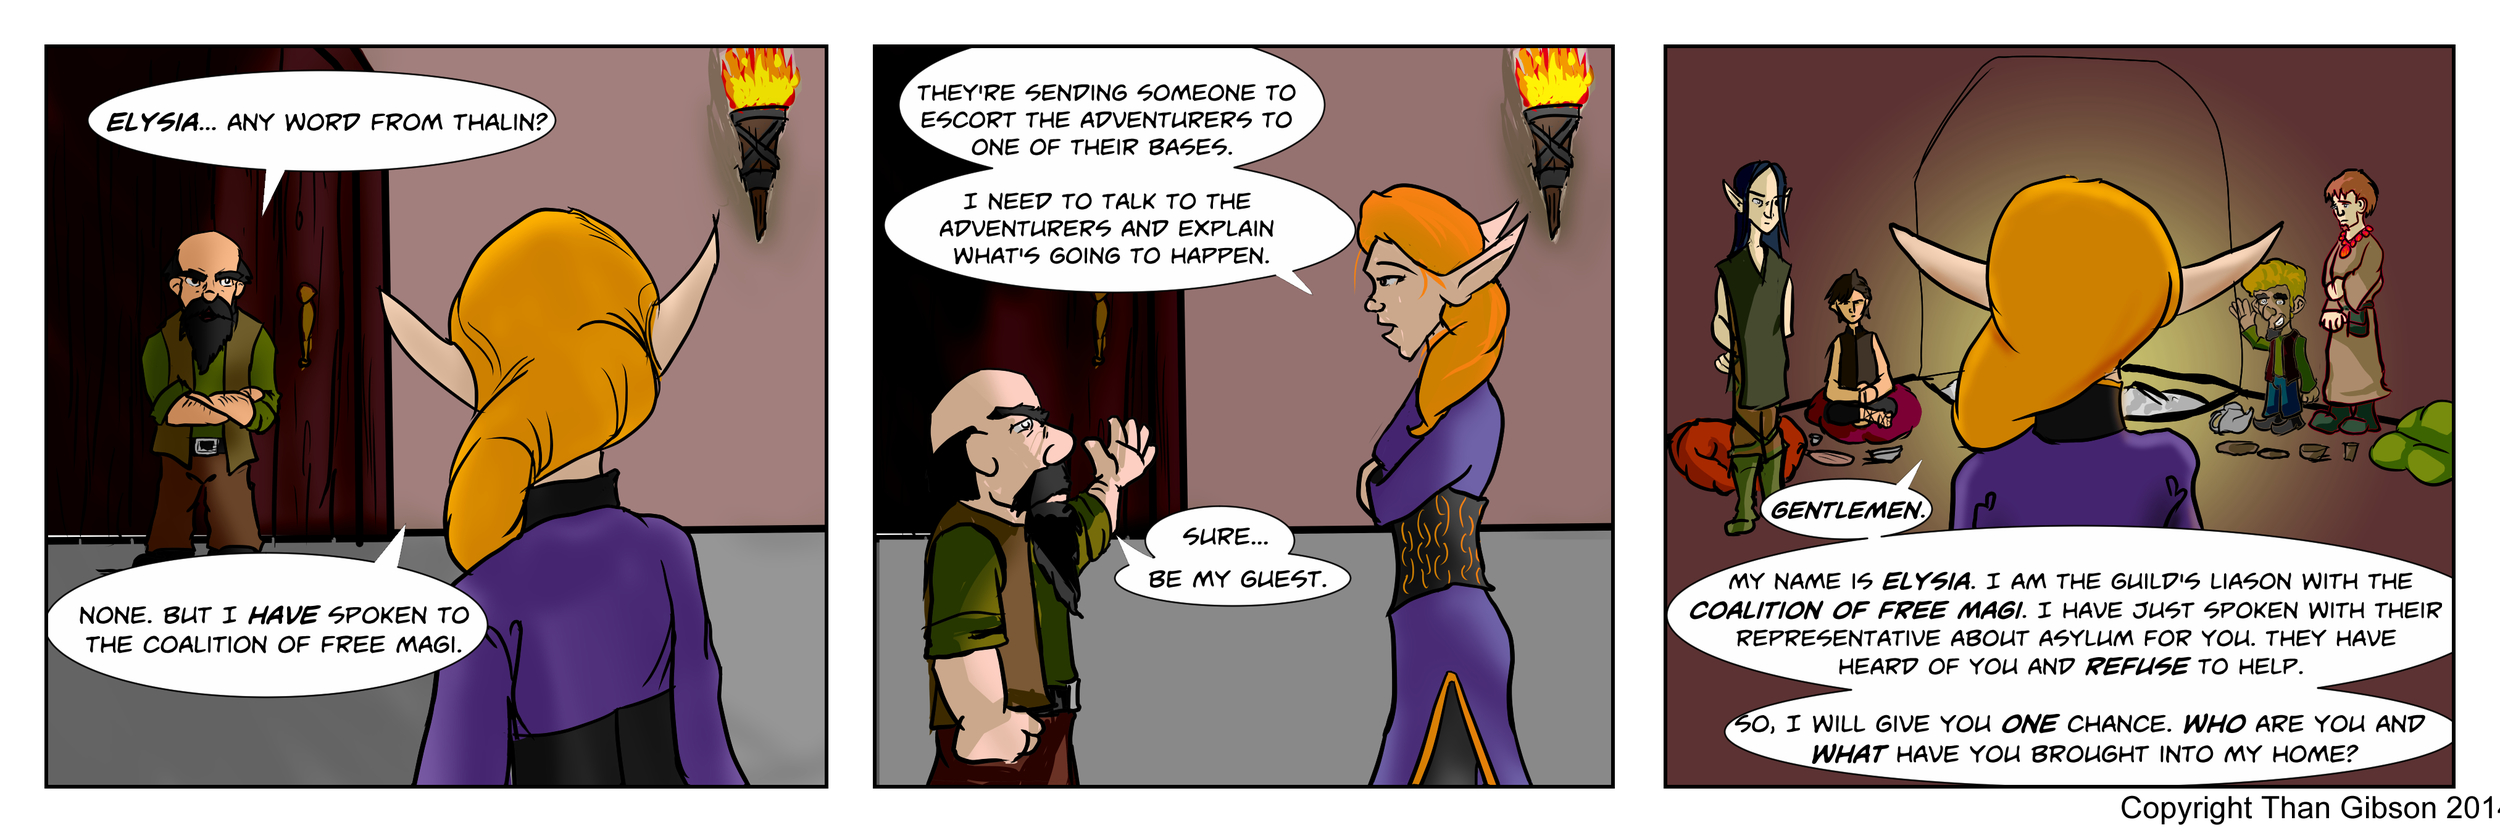 Strip 19 - Click image for a LARGER view.